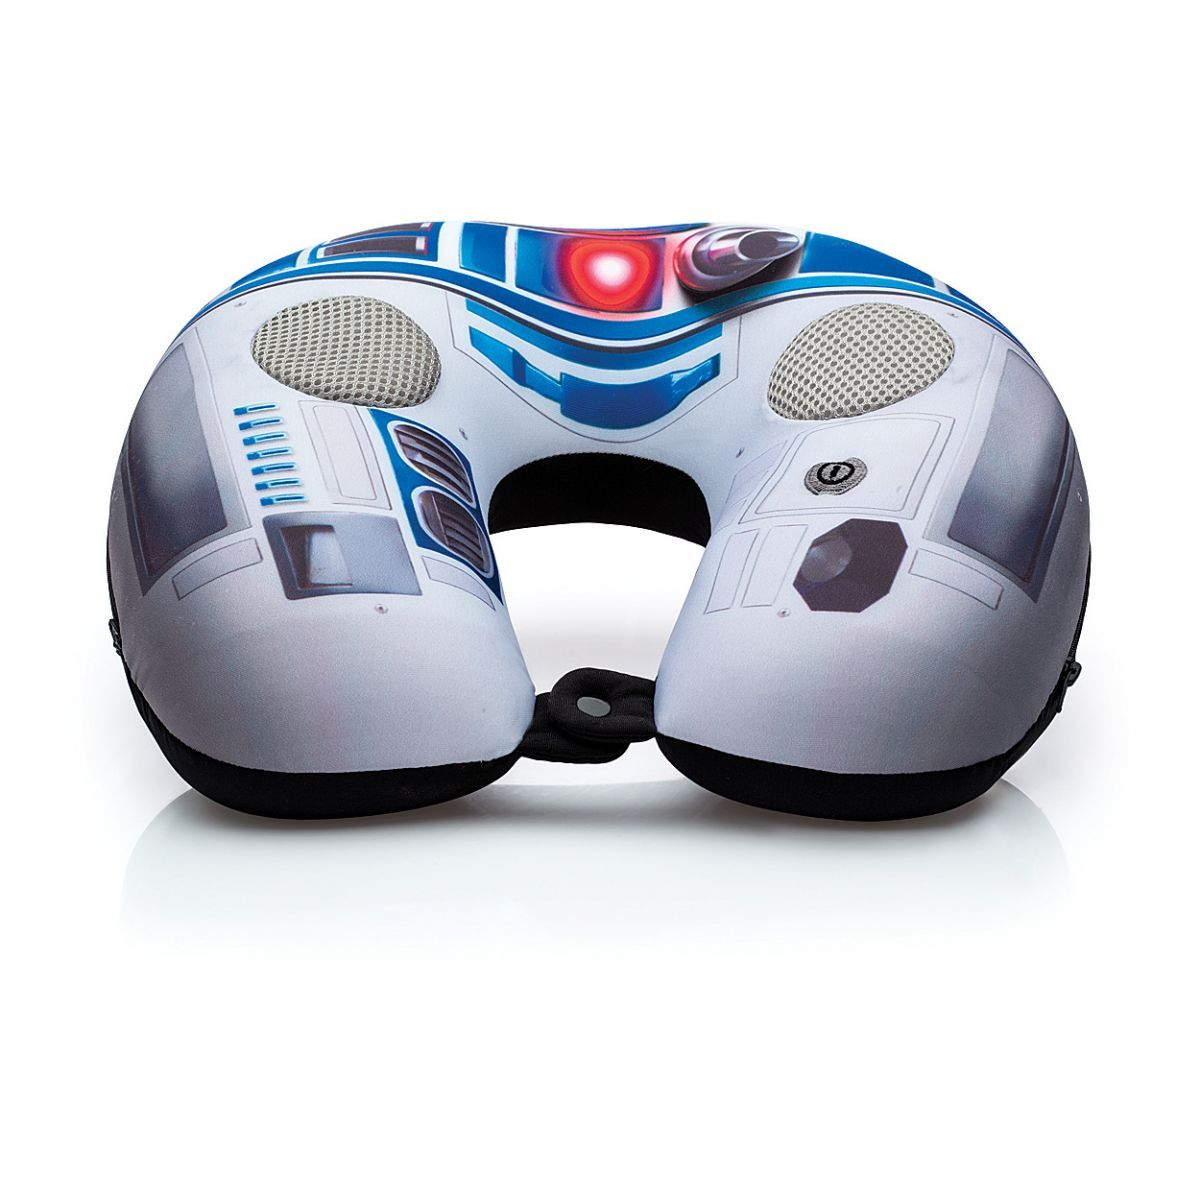 ab93a3c2477c6b Almofada massageadora speaker star wars r2d2 - Imaginarium